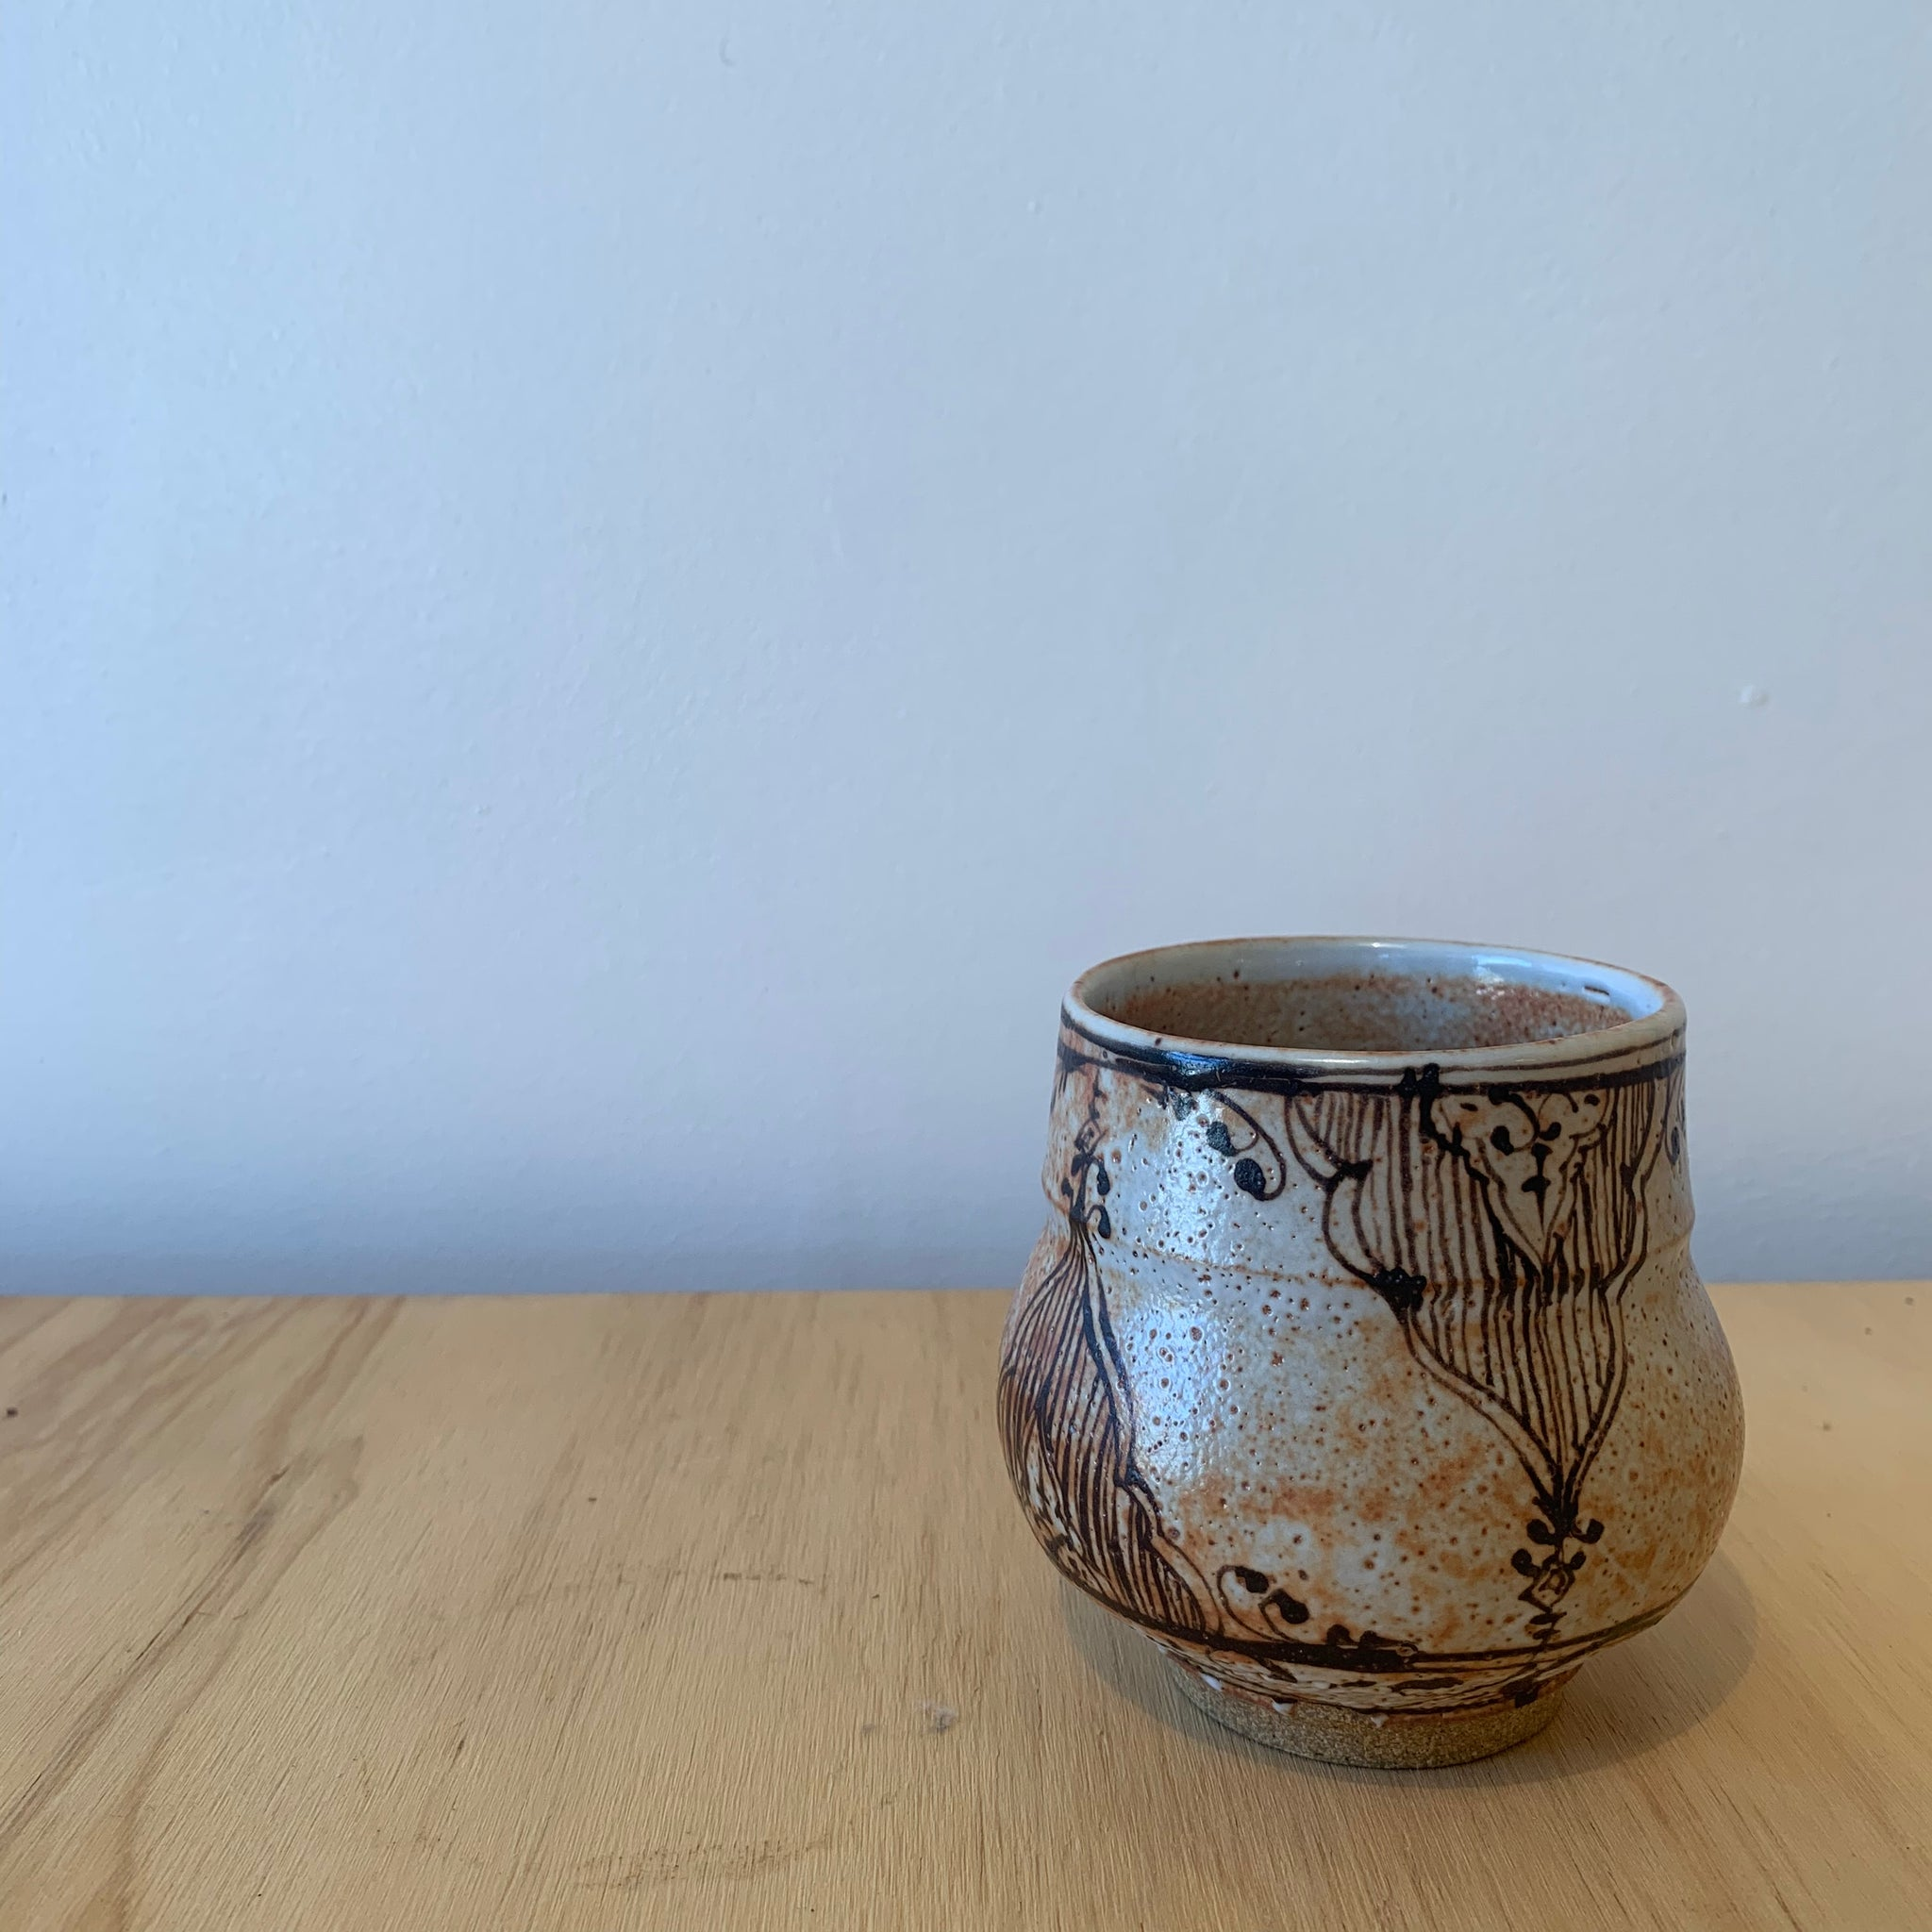 Shino Glazed Cup by David Swenson